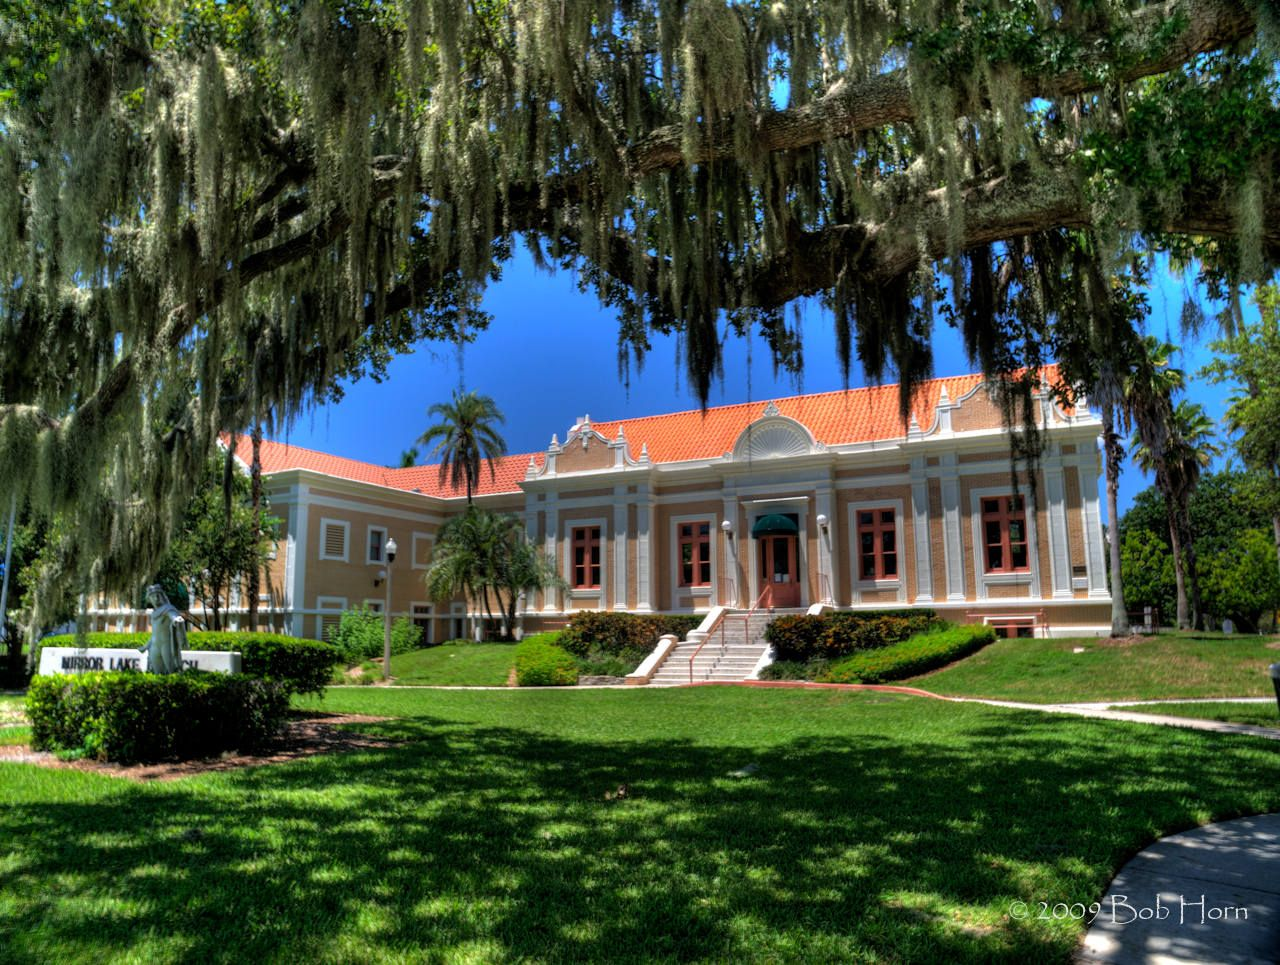 The Mirror Lake Library In St Petersburg Fl It S A Carnegie Library Built In 1915 But With Some Modern Additions Inc Ybor City Petersburg The Neighbourhood